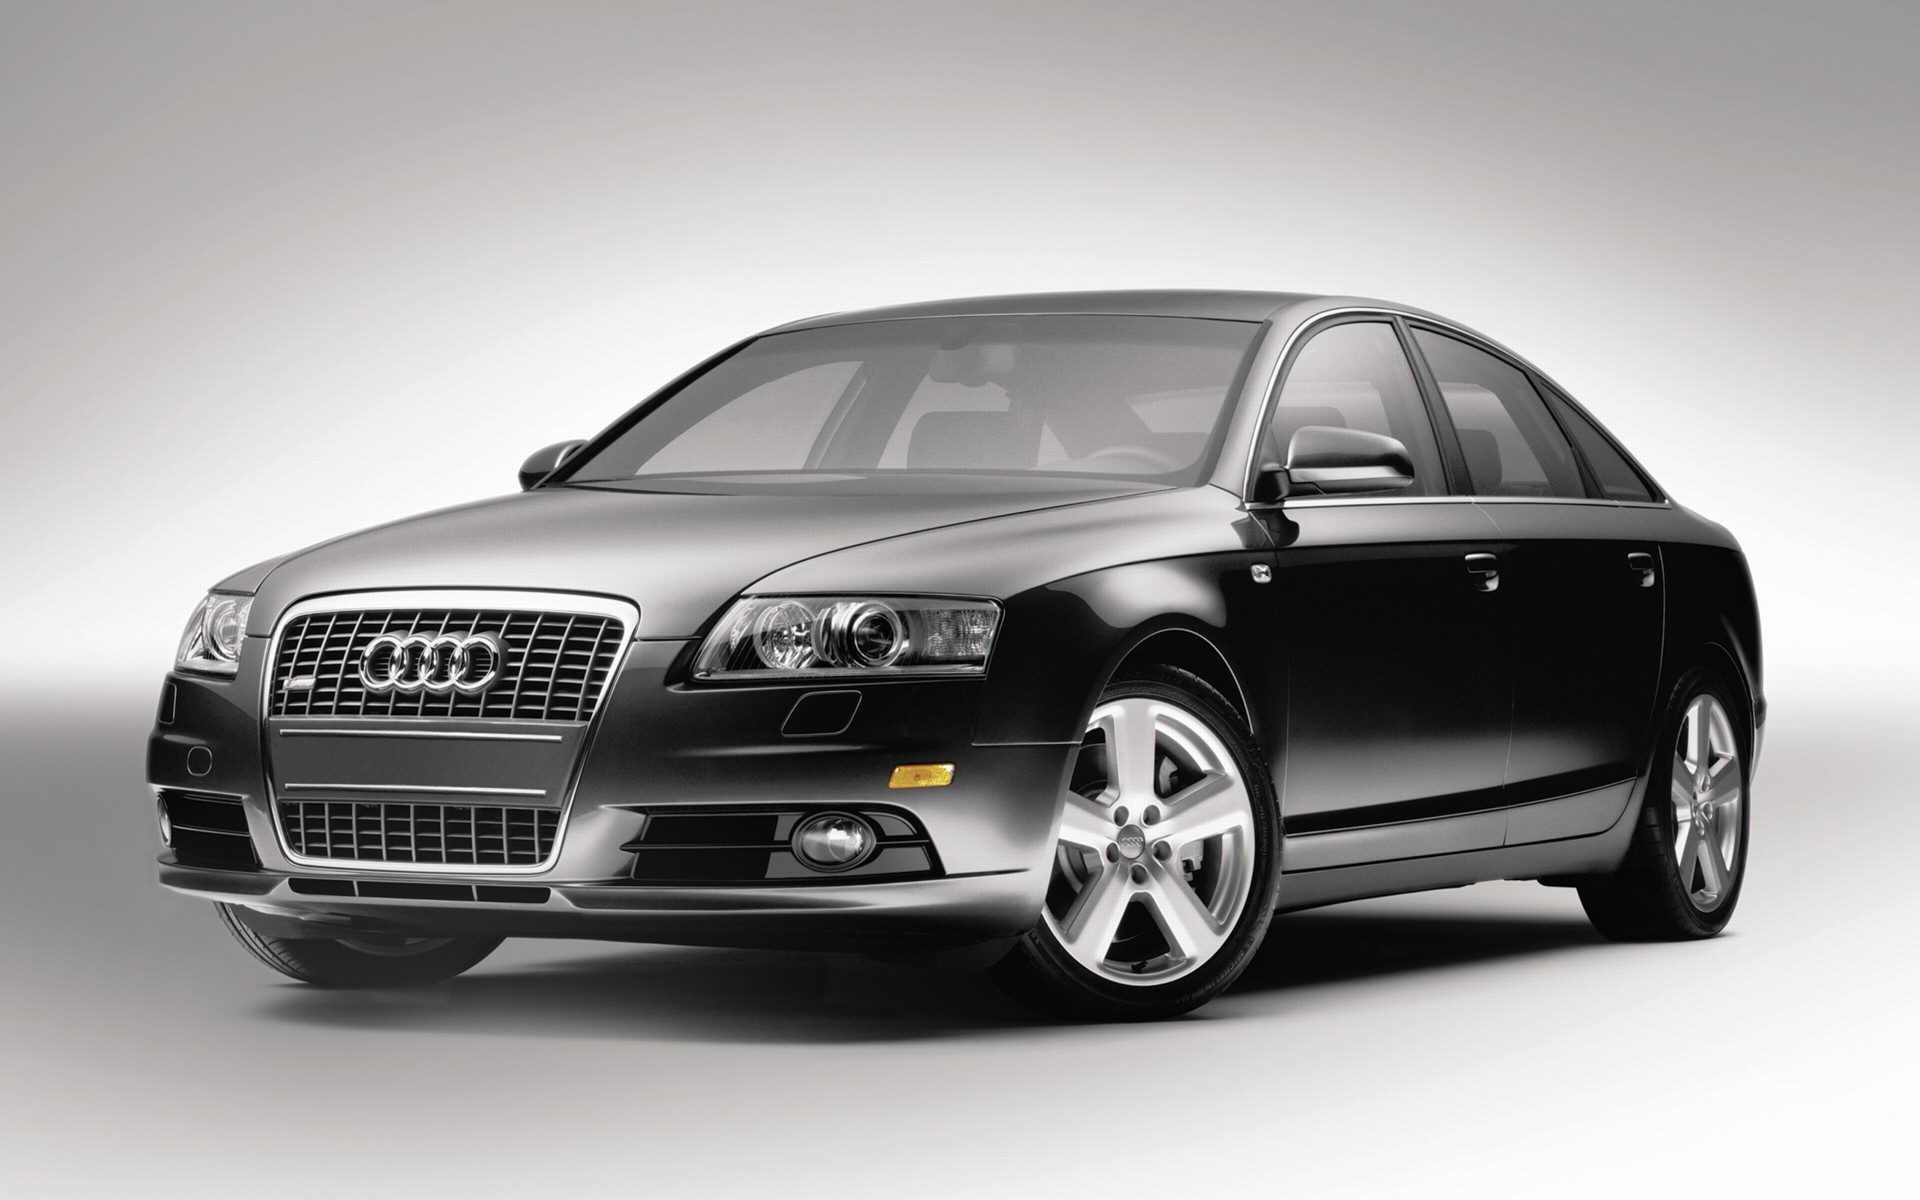 2007 audi a6 images photo audi a6 manu 07. Black Bedroom Furniture Sets. Home Design Ideas